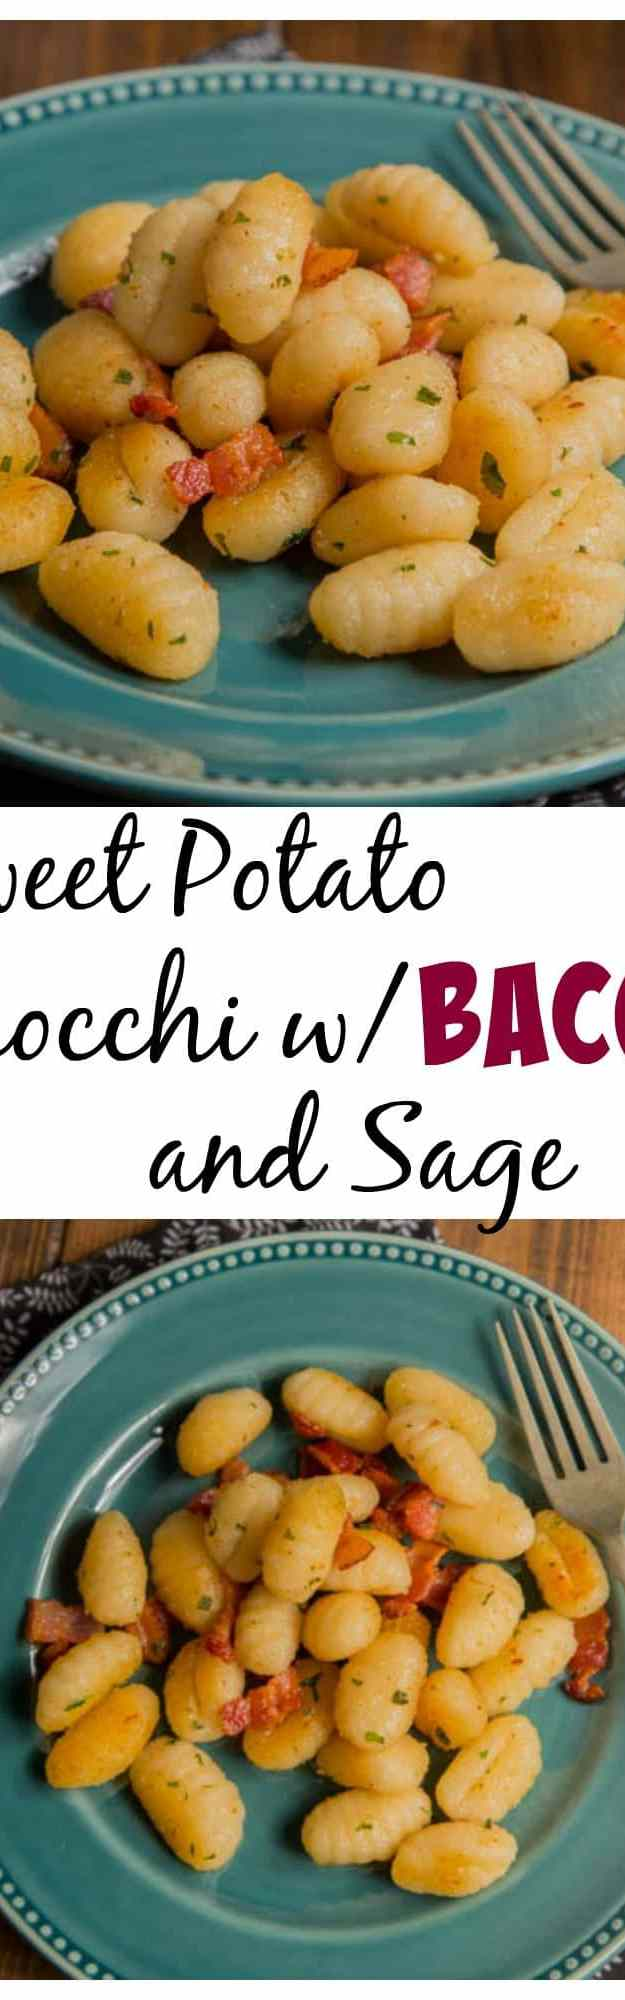 Sweet Potato Gnocchi with Bacon and Sage - Dinner is ready in just 20 minutes!  Crunchy smokey bacon, fresh sage, and Parmesan cheese with sweet potato gnocchi make a wonderful flavor combination.